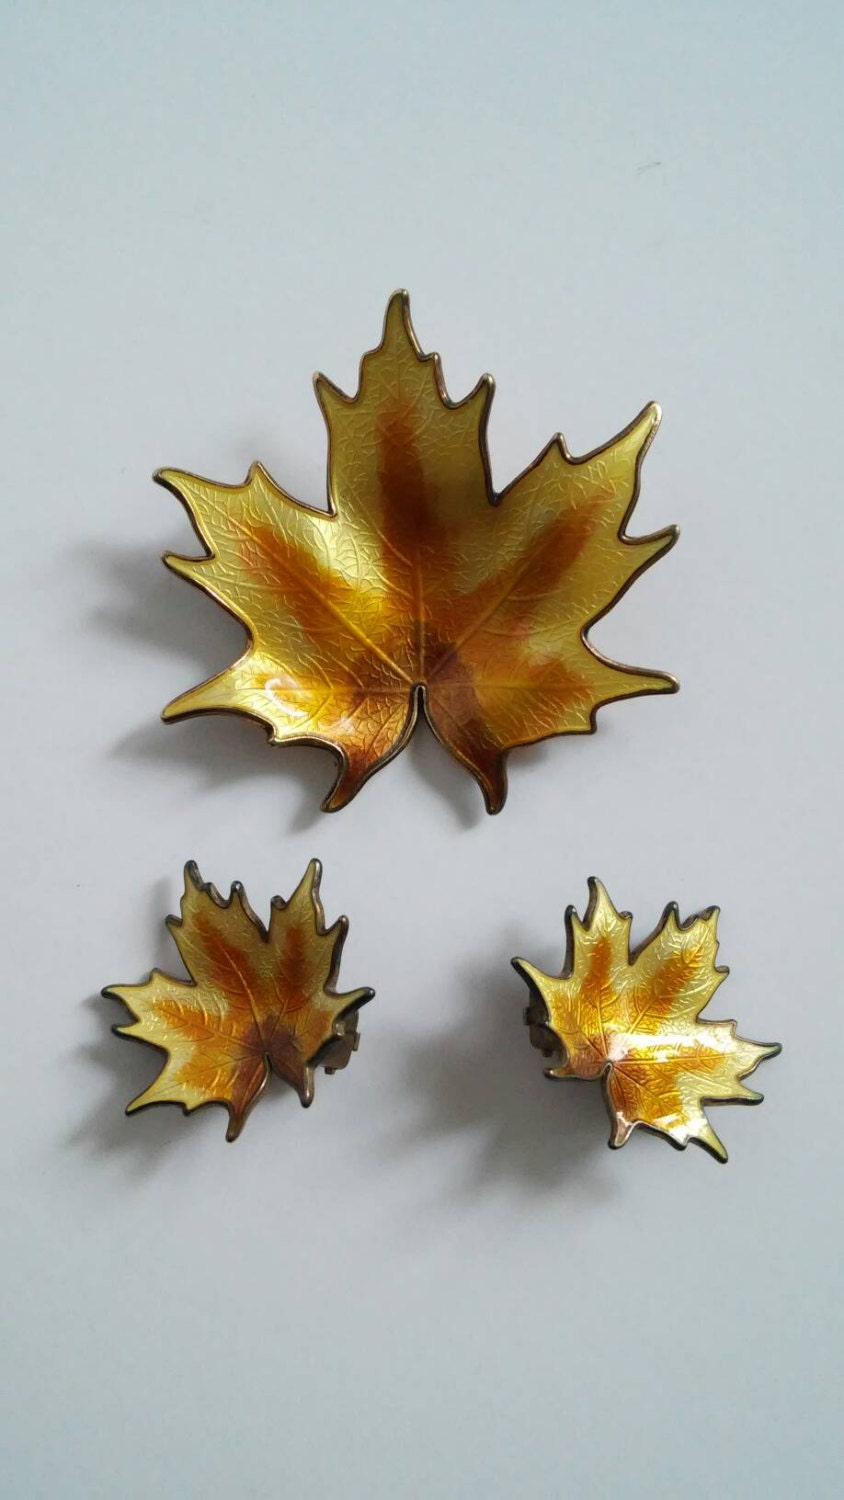 Vintage Enamel Leaf Brooch Earring Set Clip Leaf Earring